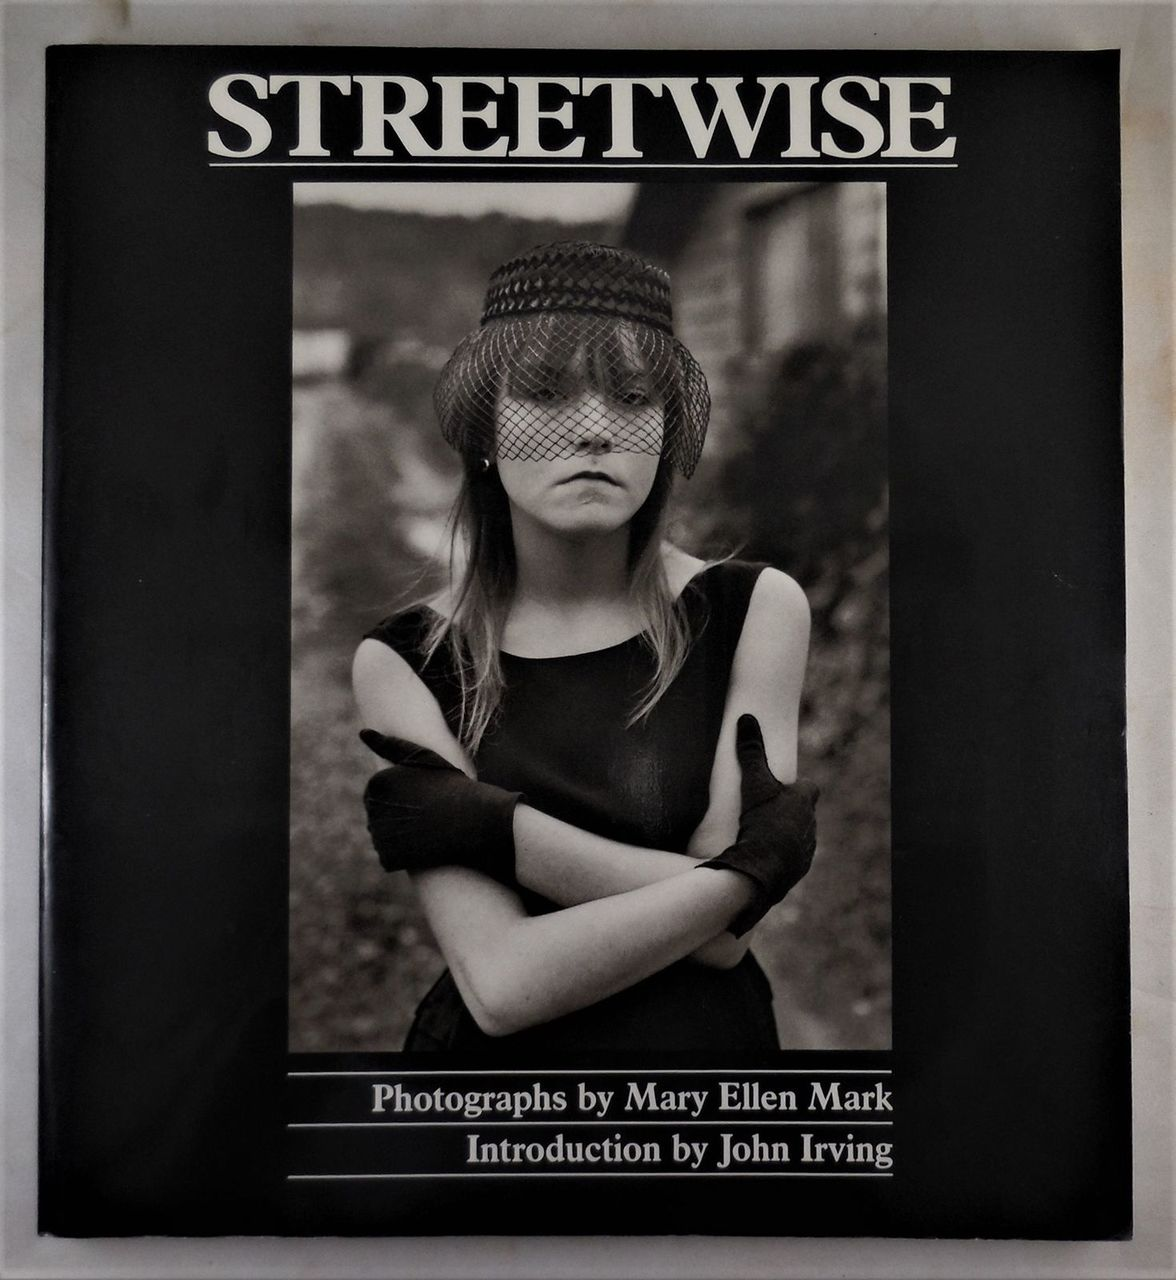 STREETWISE, by Mary Ellen Mark - 1988